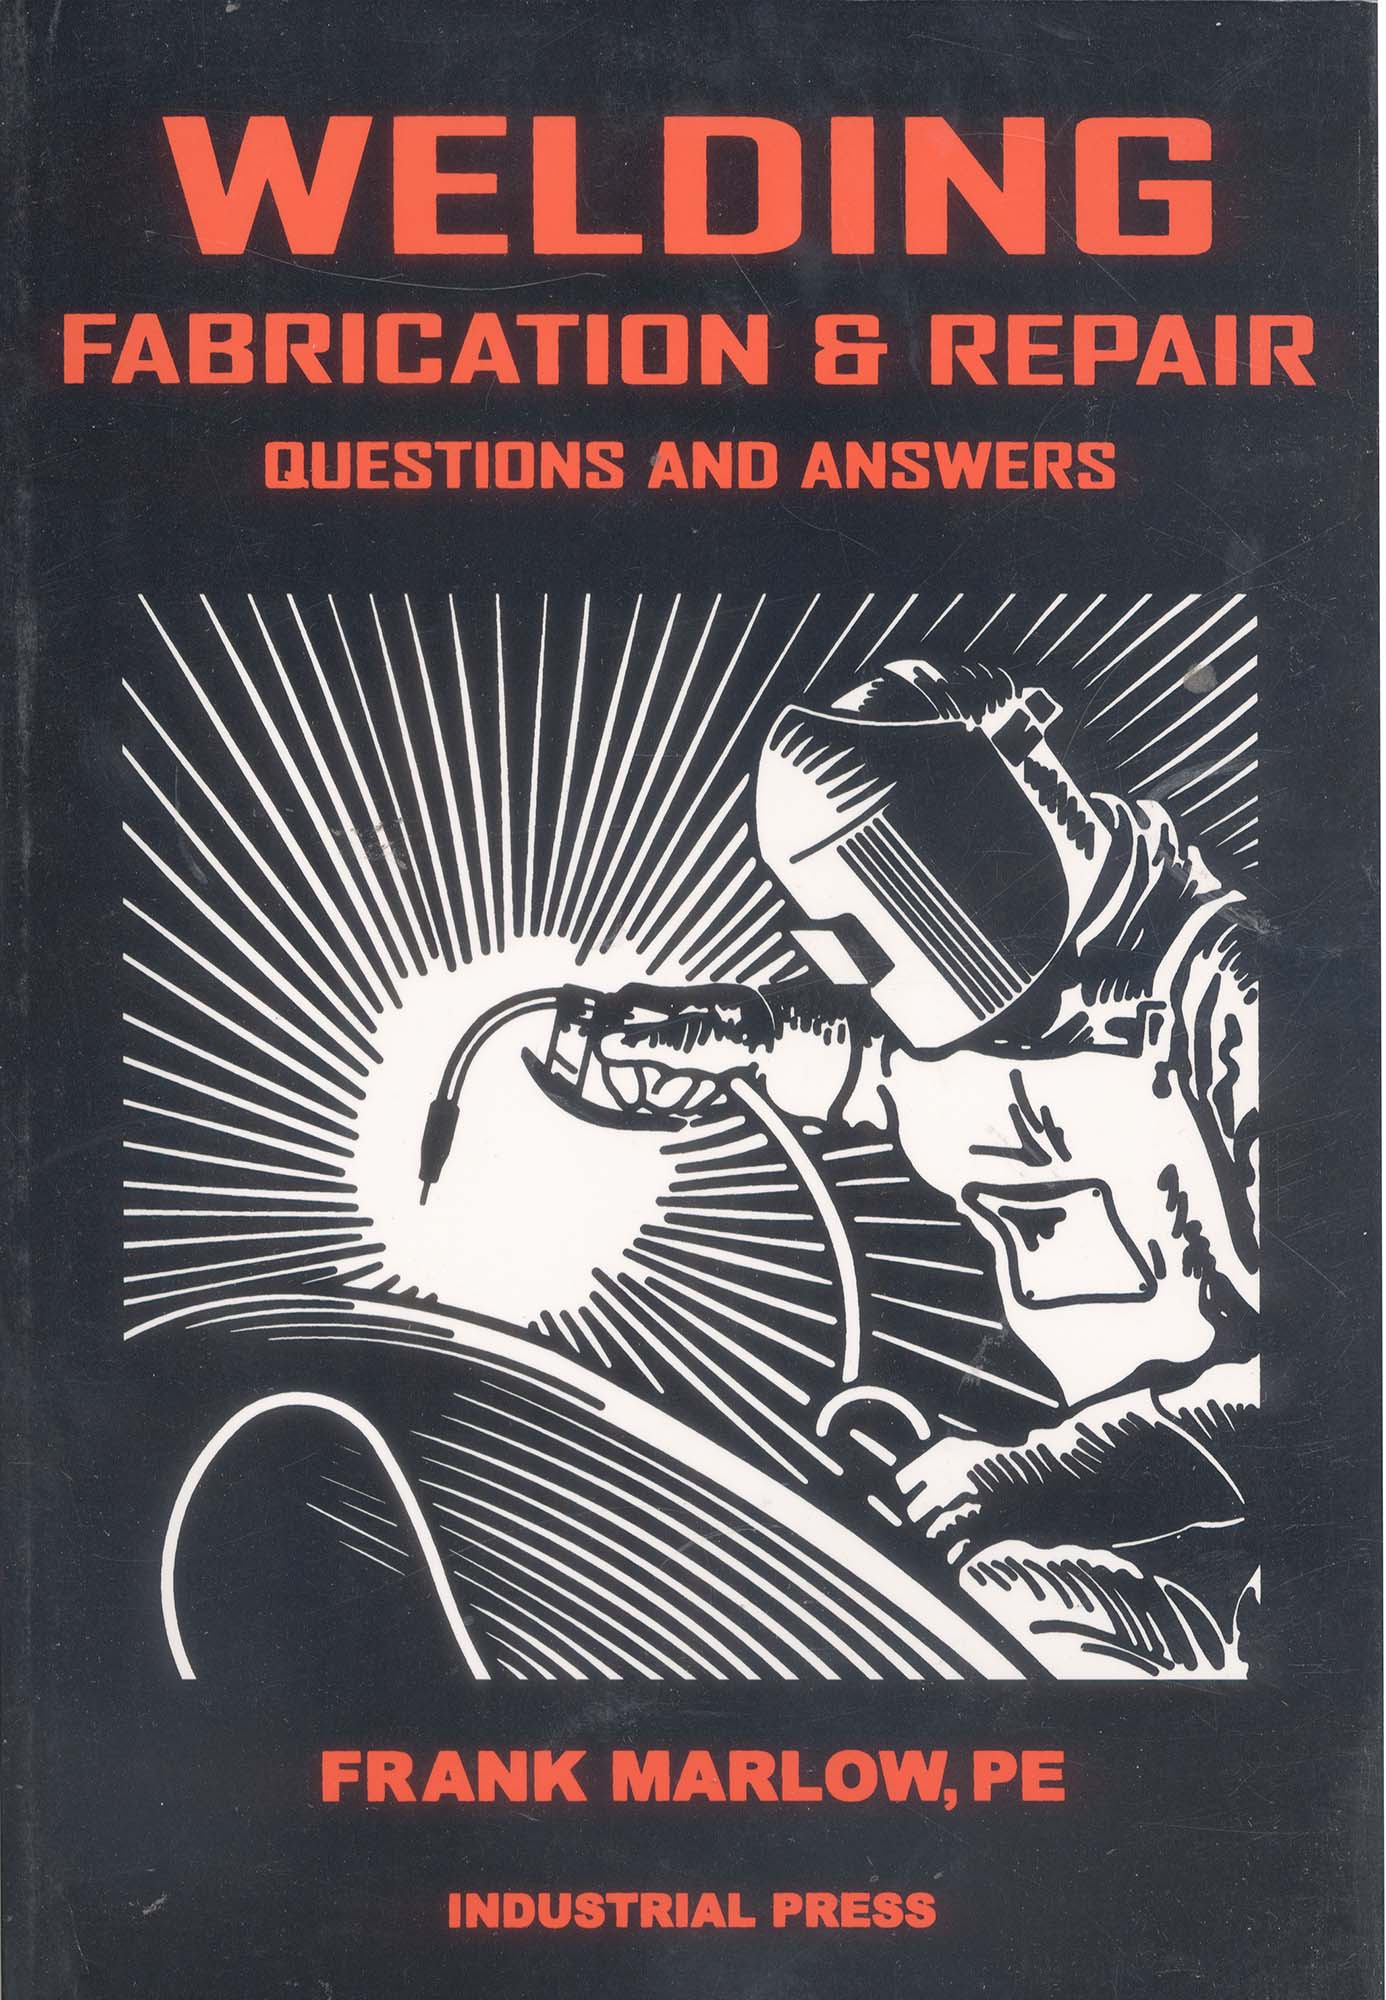 Book-Welding Fabrication and Repair